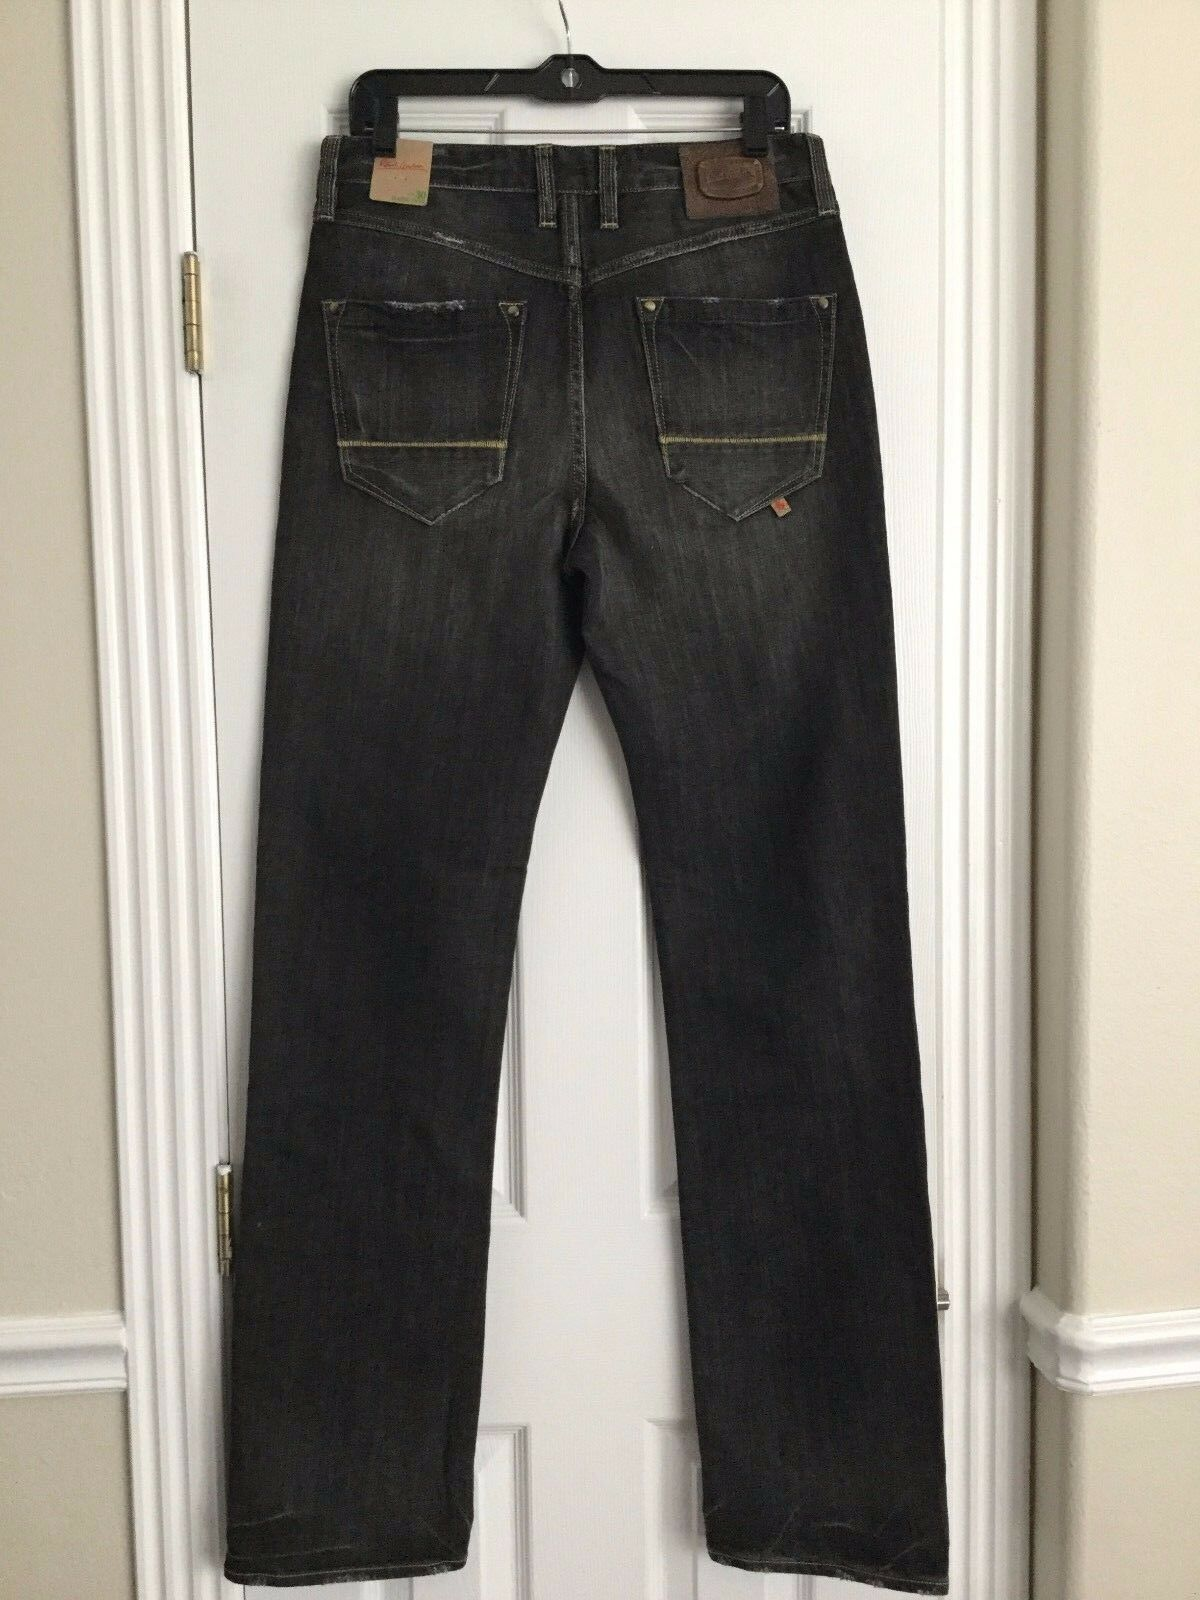 Nwt Robert Graham Sz30 Klassisch Yates Distressed Jeans